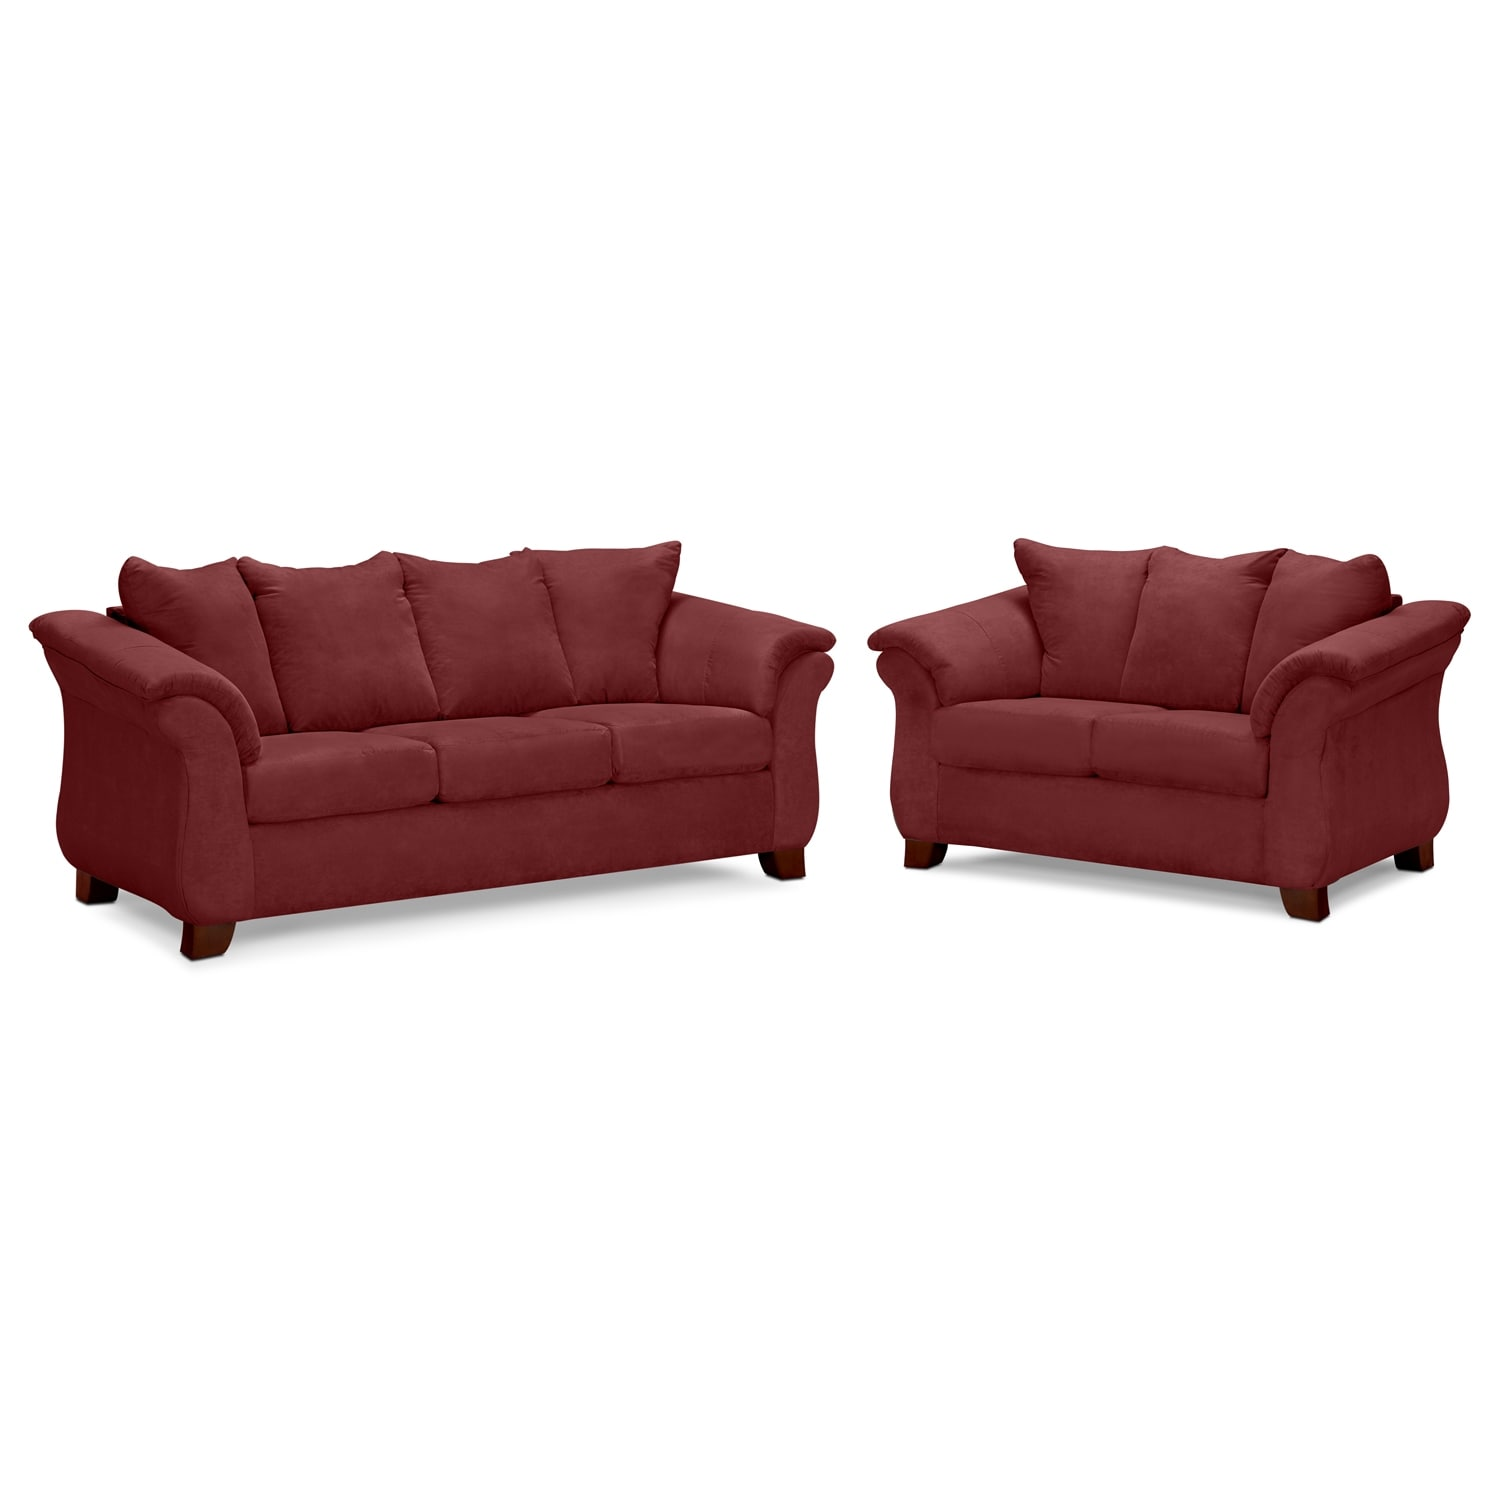 Adrian Sofa and Loveseat Set Red Value City Furniture  : 280760 from www.valuecityfurniture.com size 1500 x 1500 jpeg 75kB